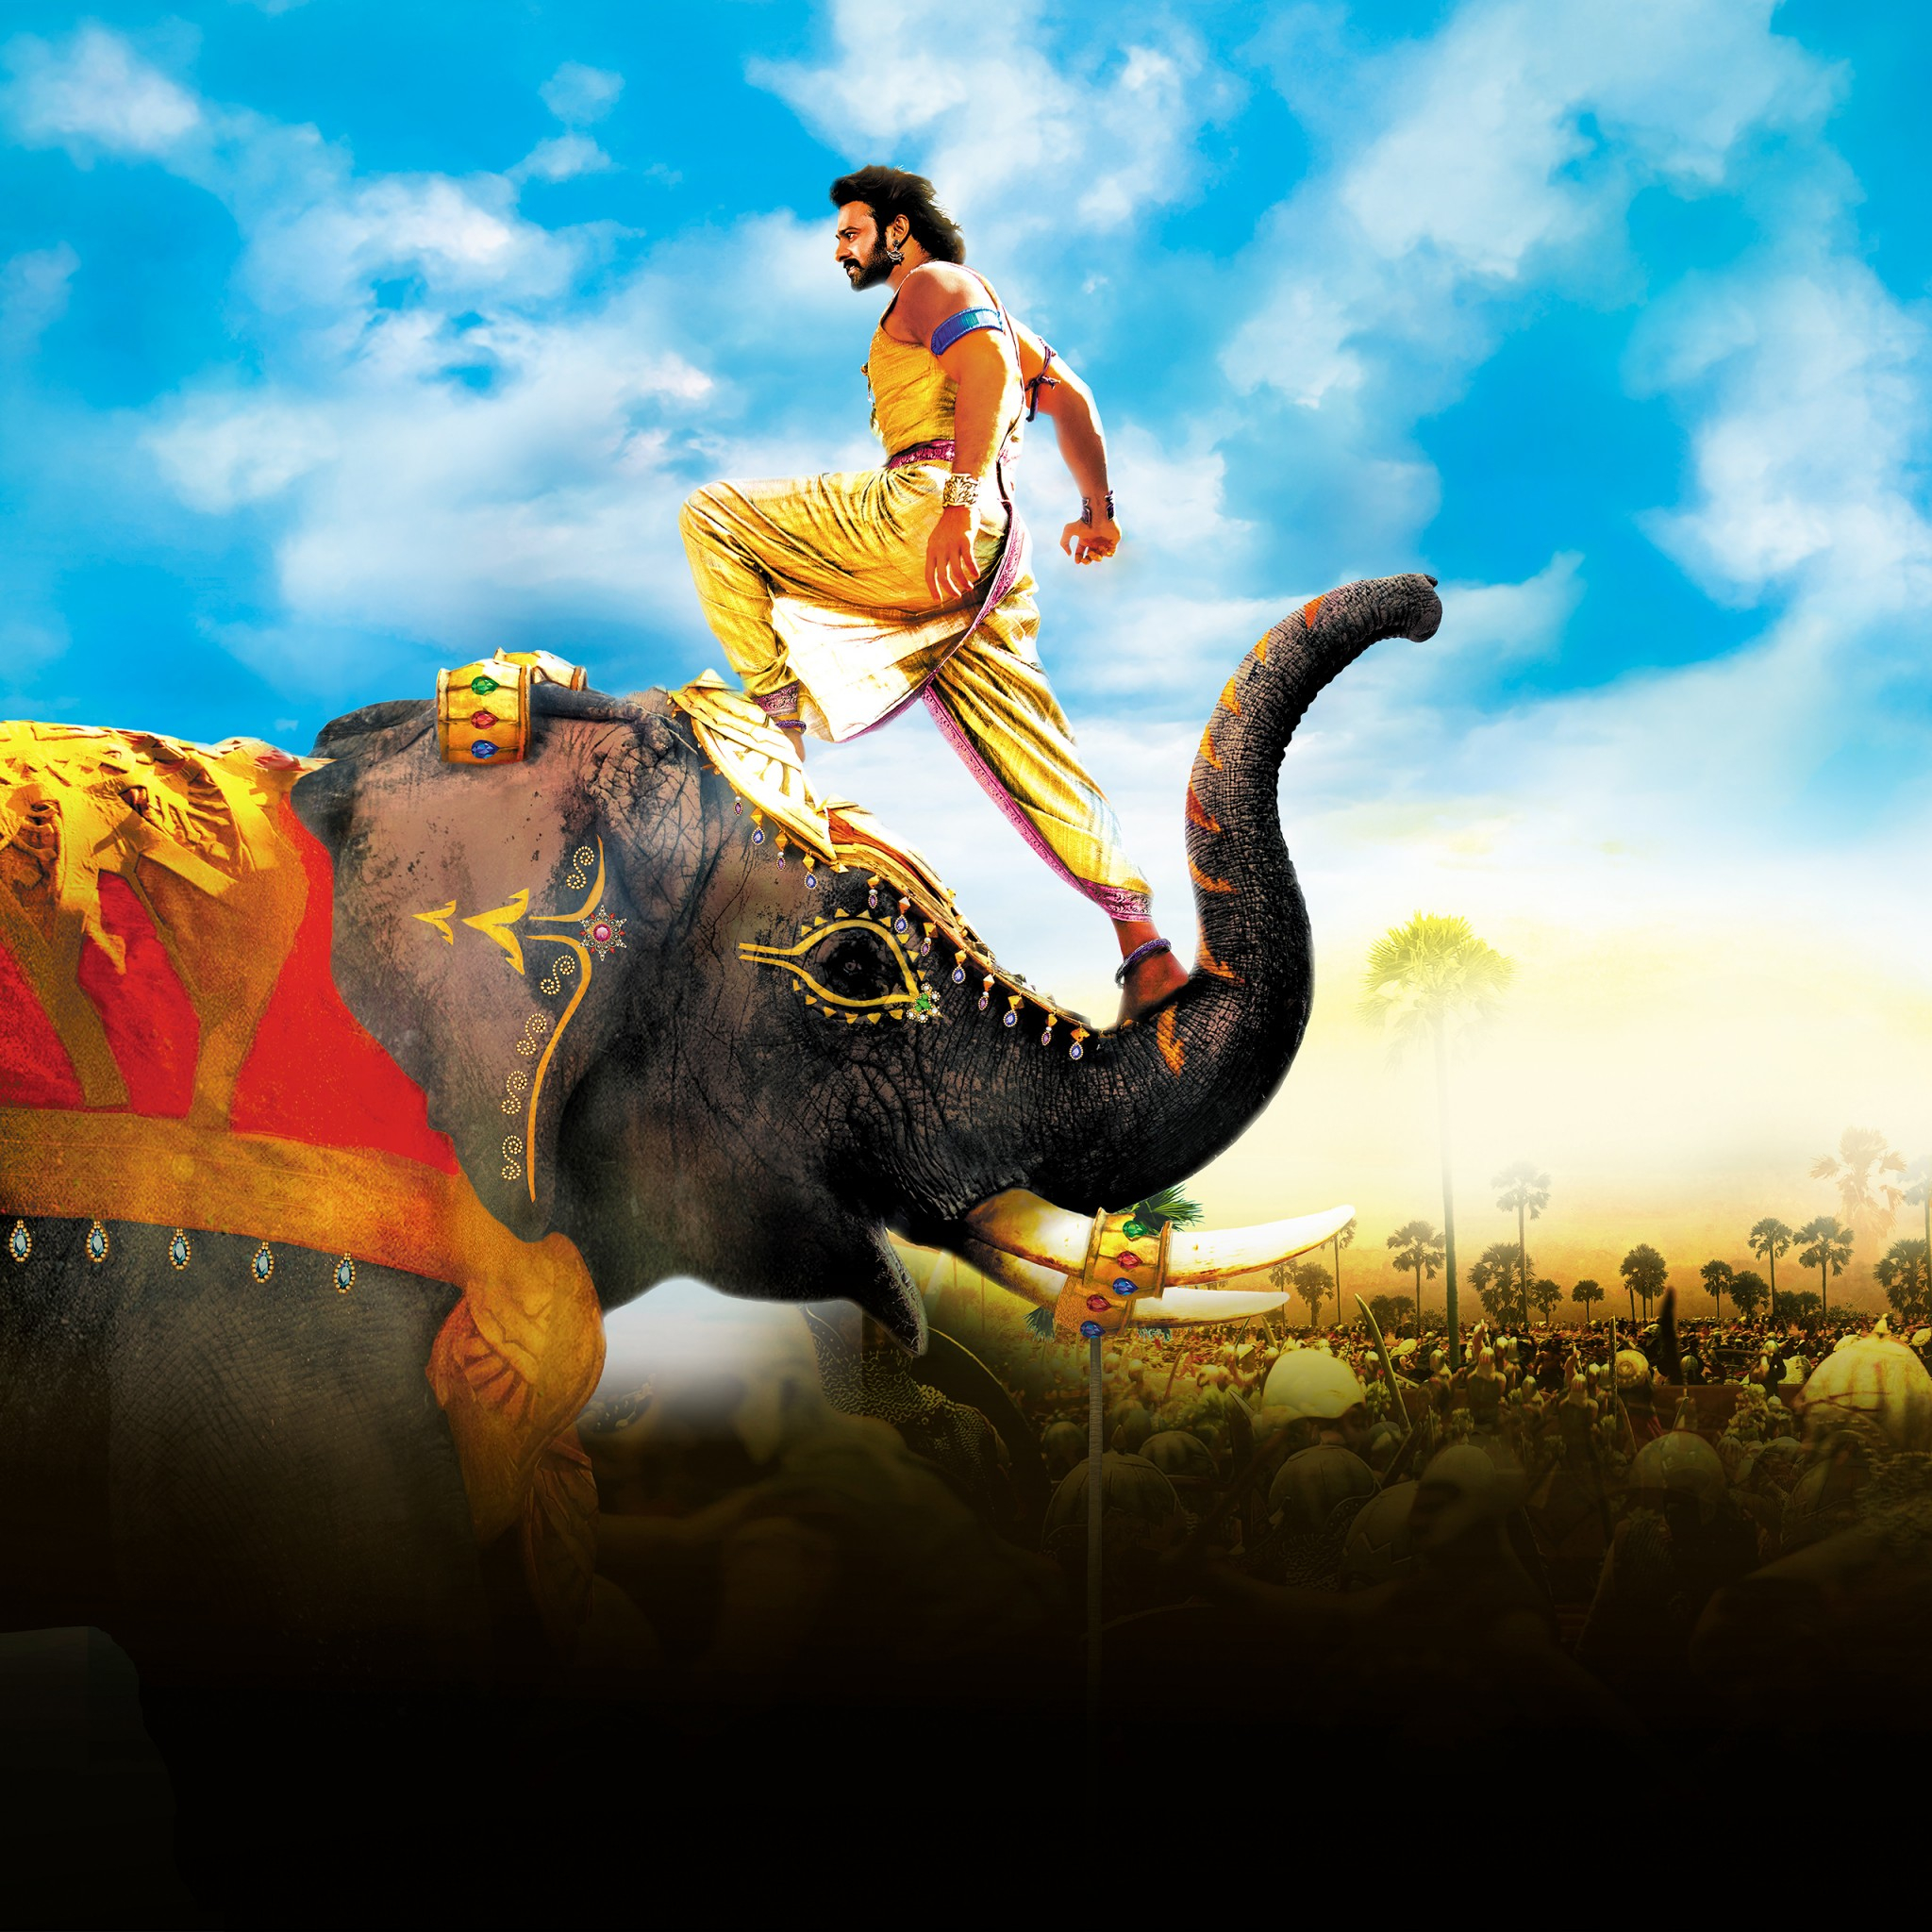 baahubali 2 the conclusion 4k 8k wallpapers